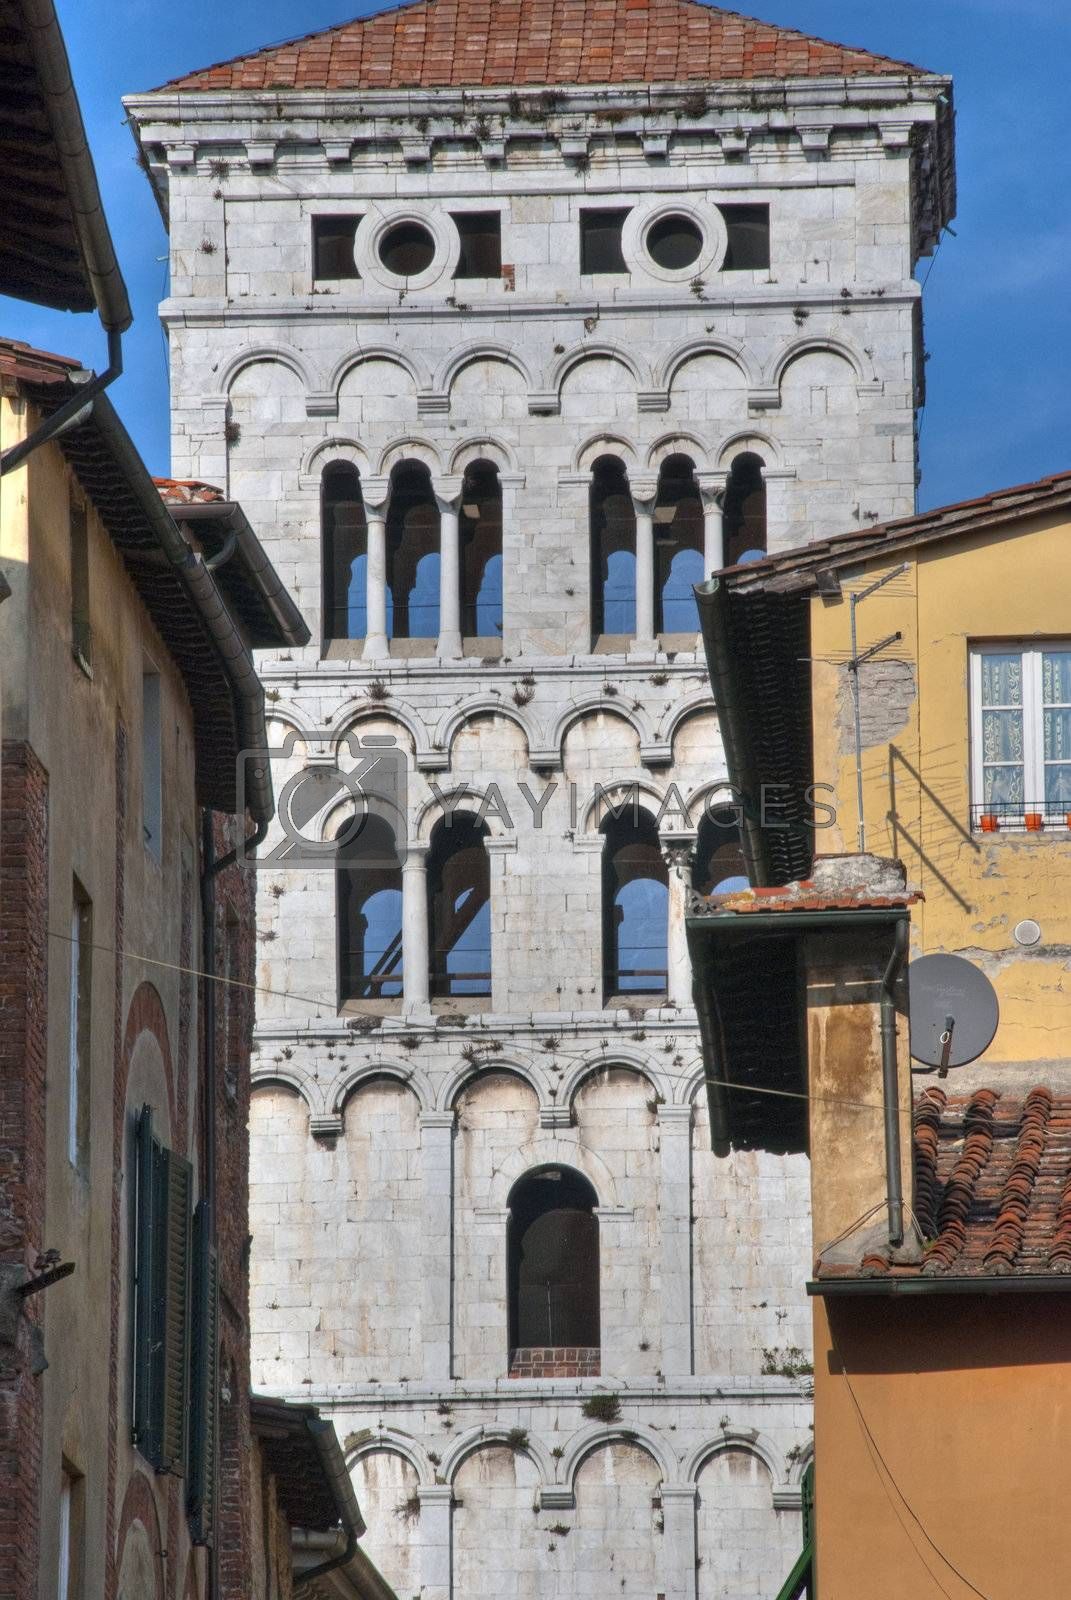 Architecture Detail in Lucca, Tuscany, Italy, October 2009 by jovannig